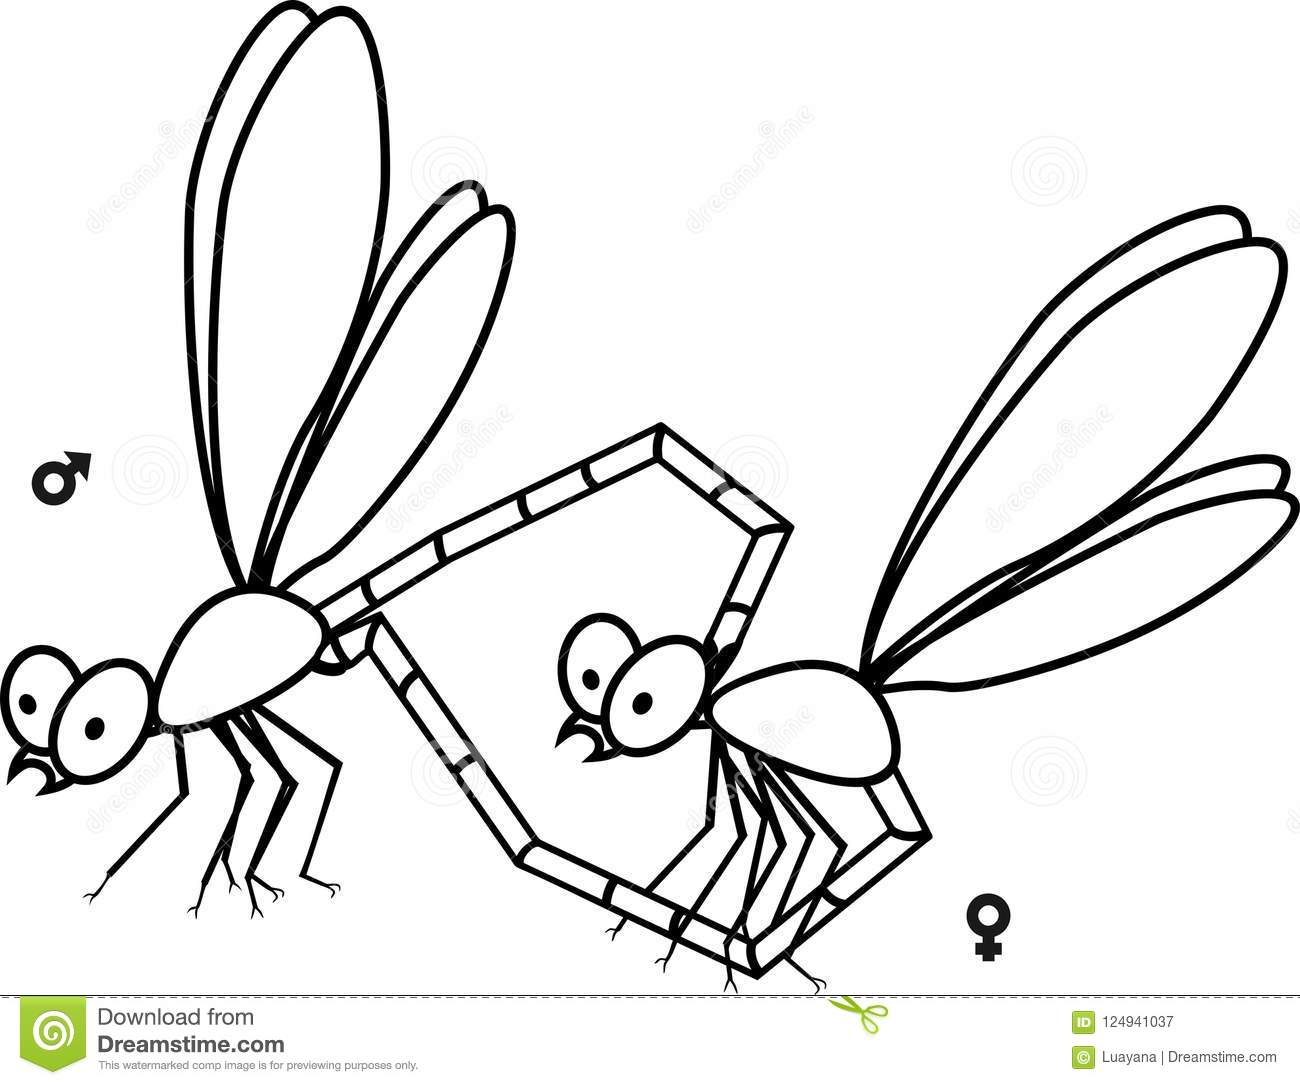 FREE Dragonfly Coloring Page 8 | Insect coloring pages, Coloring ... | 1085x1300